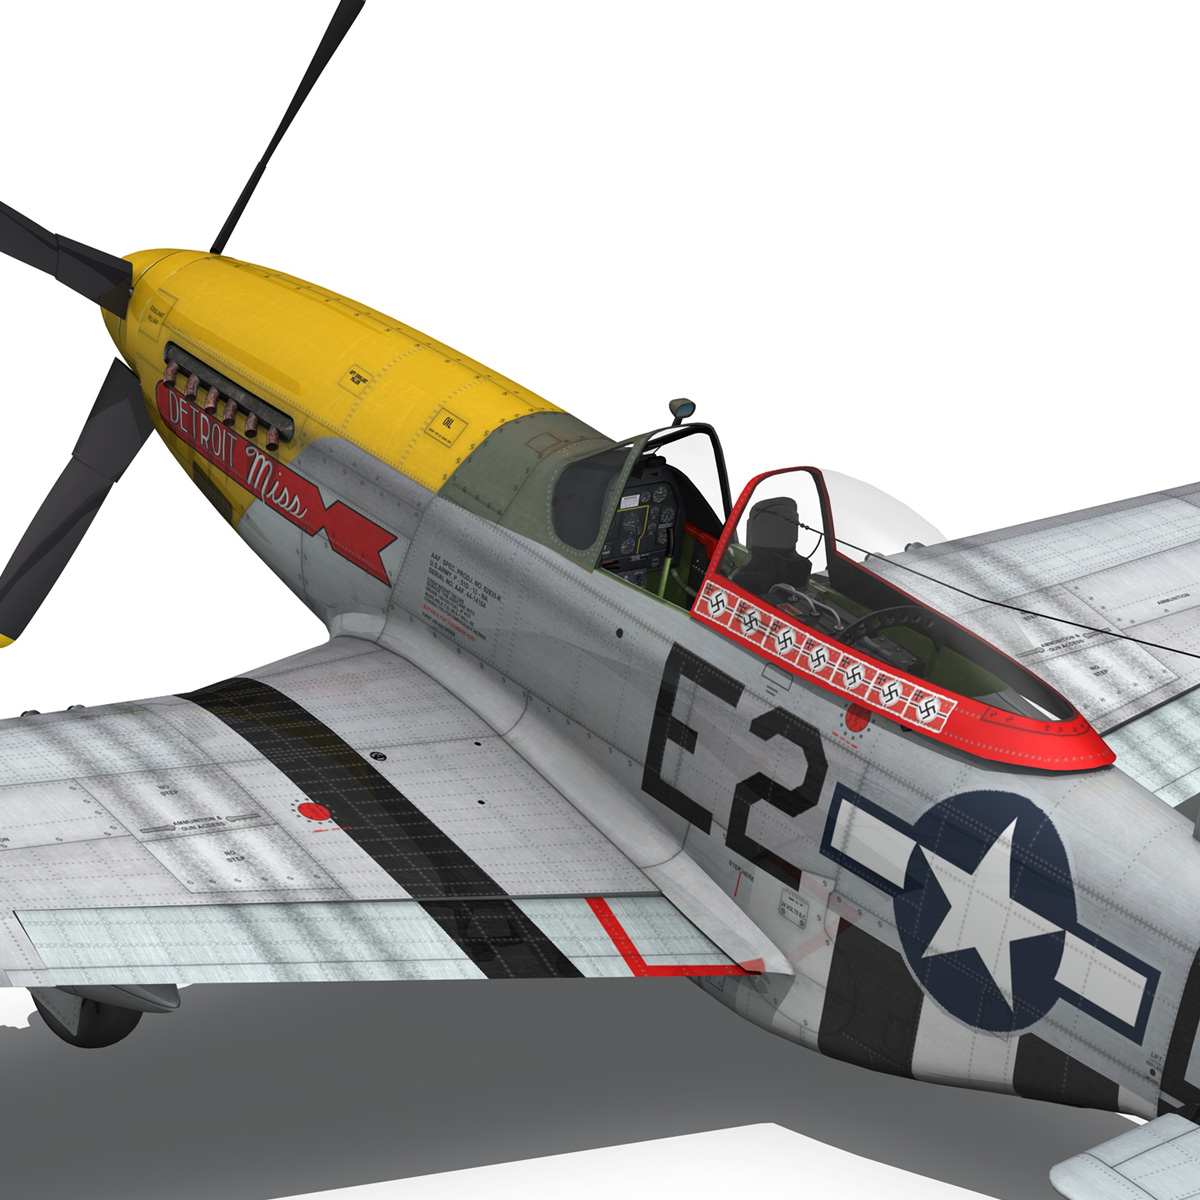 north american p-51d – mustang – detroit miss 3d model 3ds fbx c4d lwo obj 267608